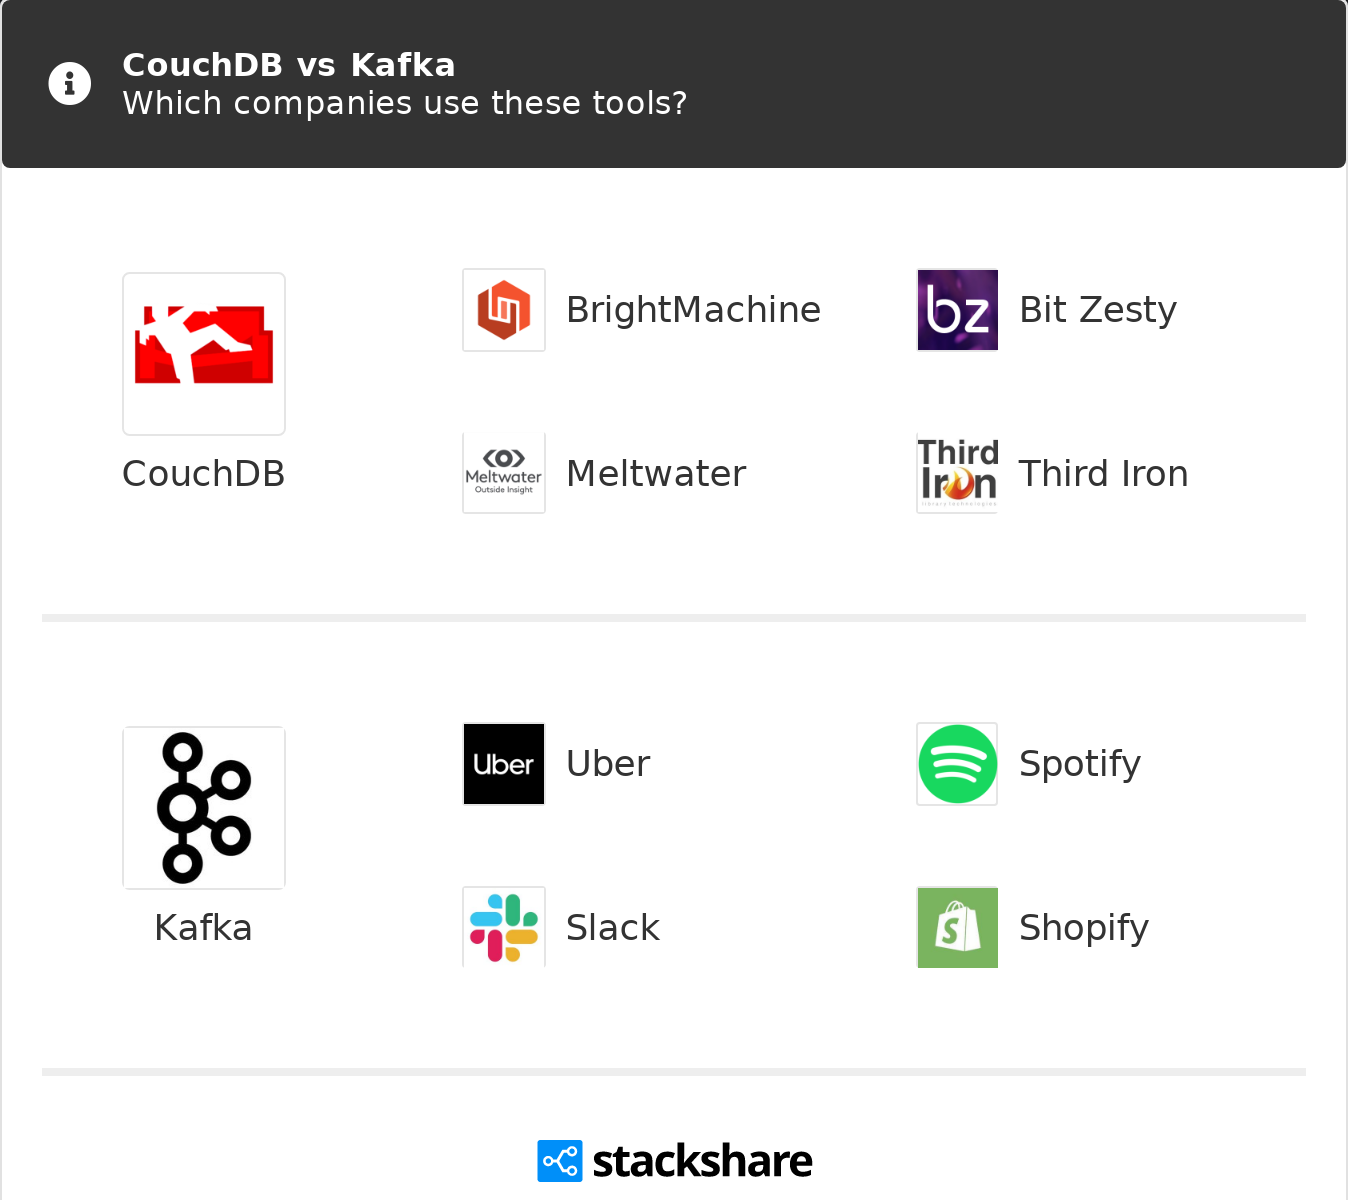 CouchDB vs Kafka   What are the differences?